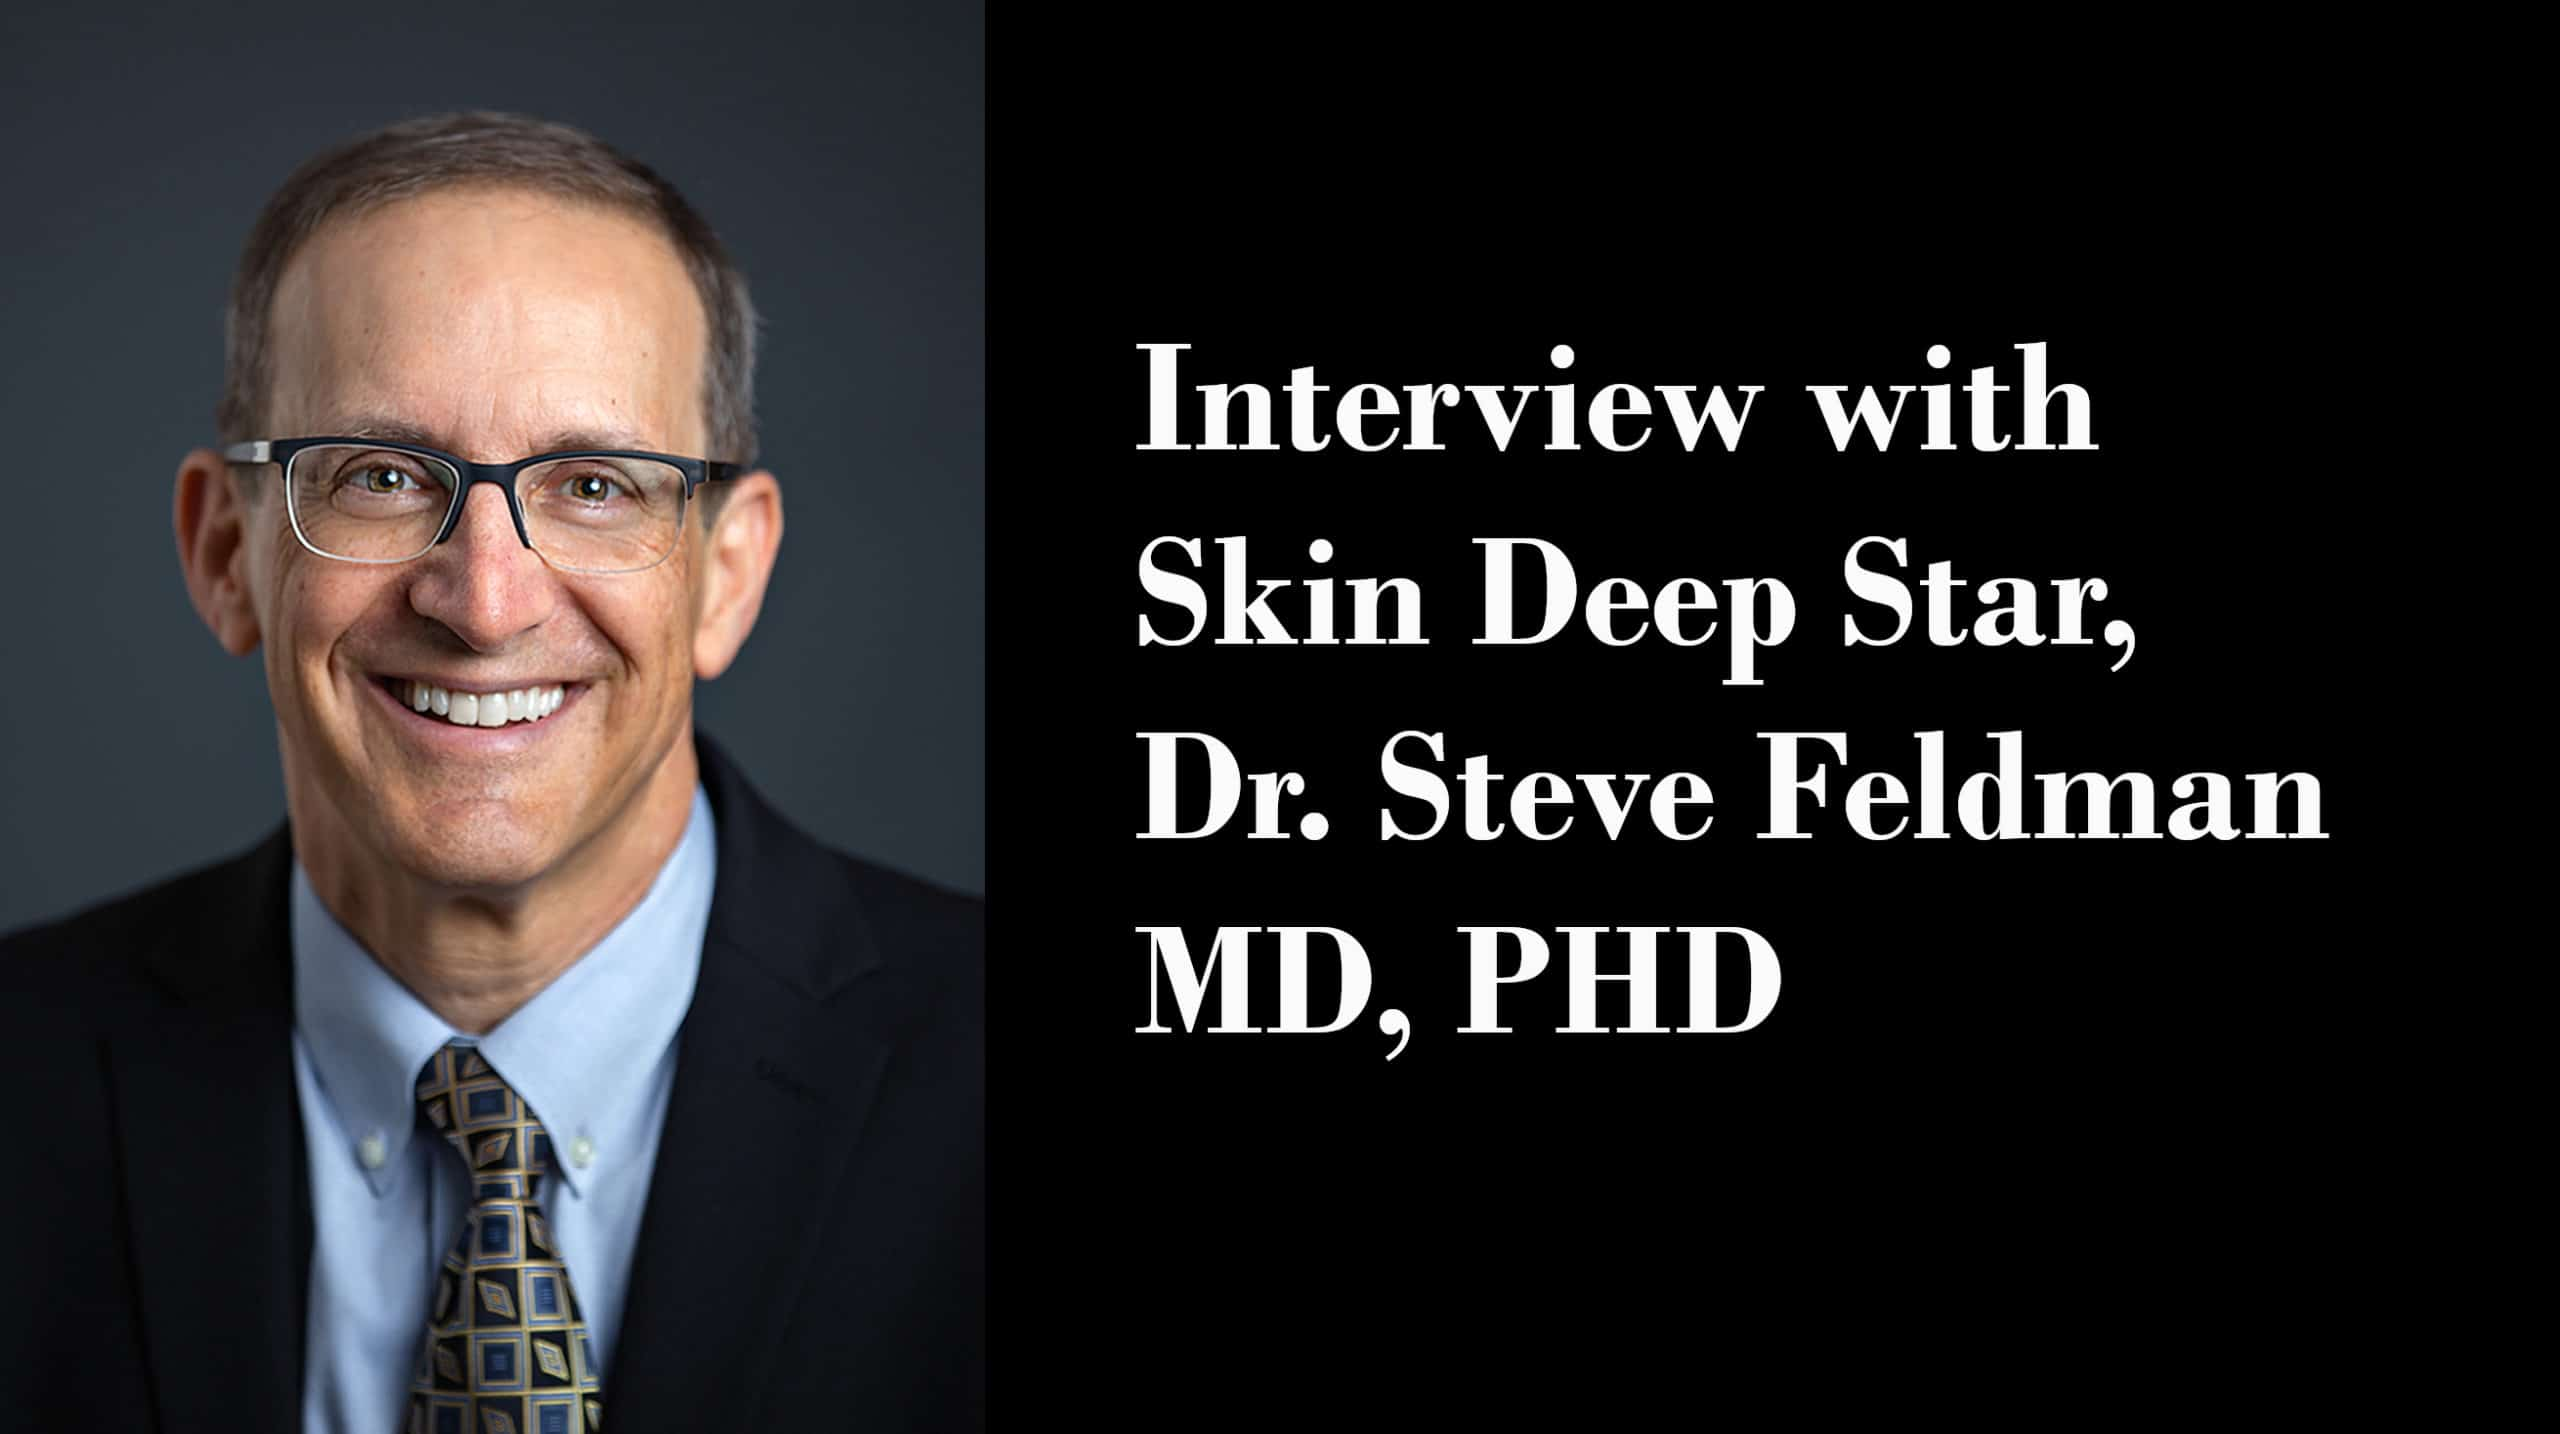 Interview with Skin Deep Star, Dr. Steve Feldman MD, PHD